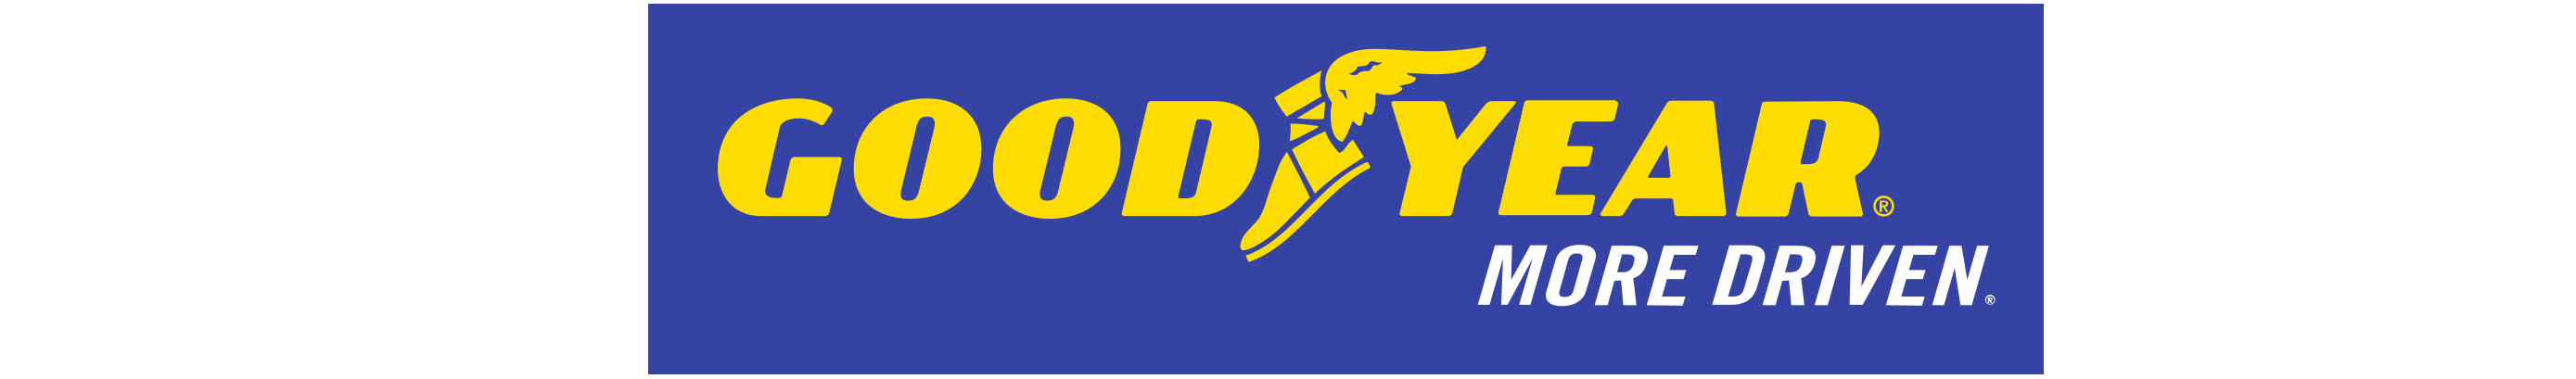 https://www.ustires.org/sites/default/files/USTMA_Goodyear_V3.png